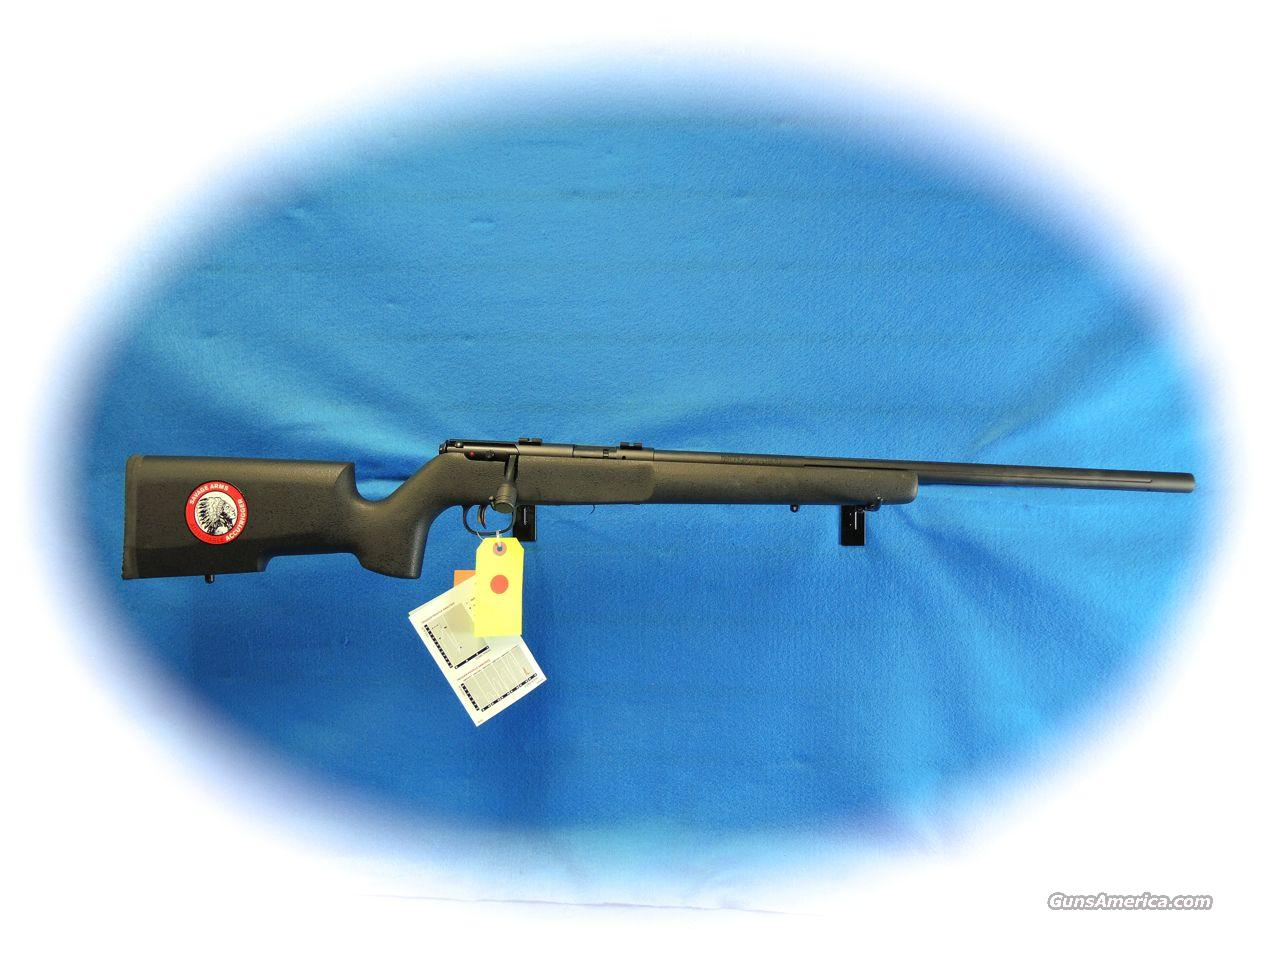 **SALE!!** Savage Mark II TR Bolt Action .22LR Rifle Mdl 25745 **New**  Guns > Rifles > Savage Rifles > Accutrigger Models > Sporting